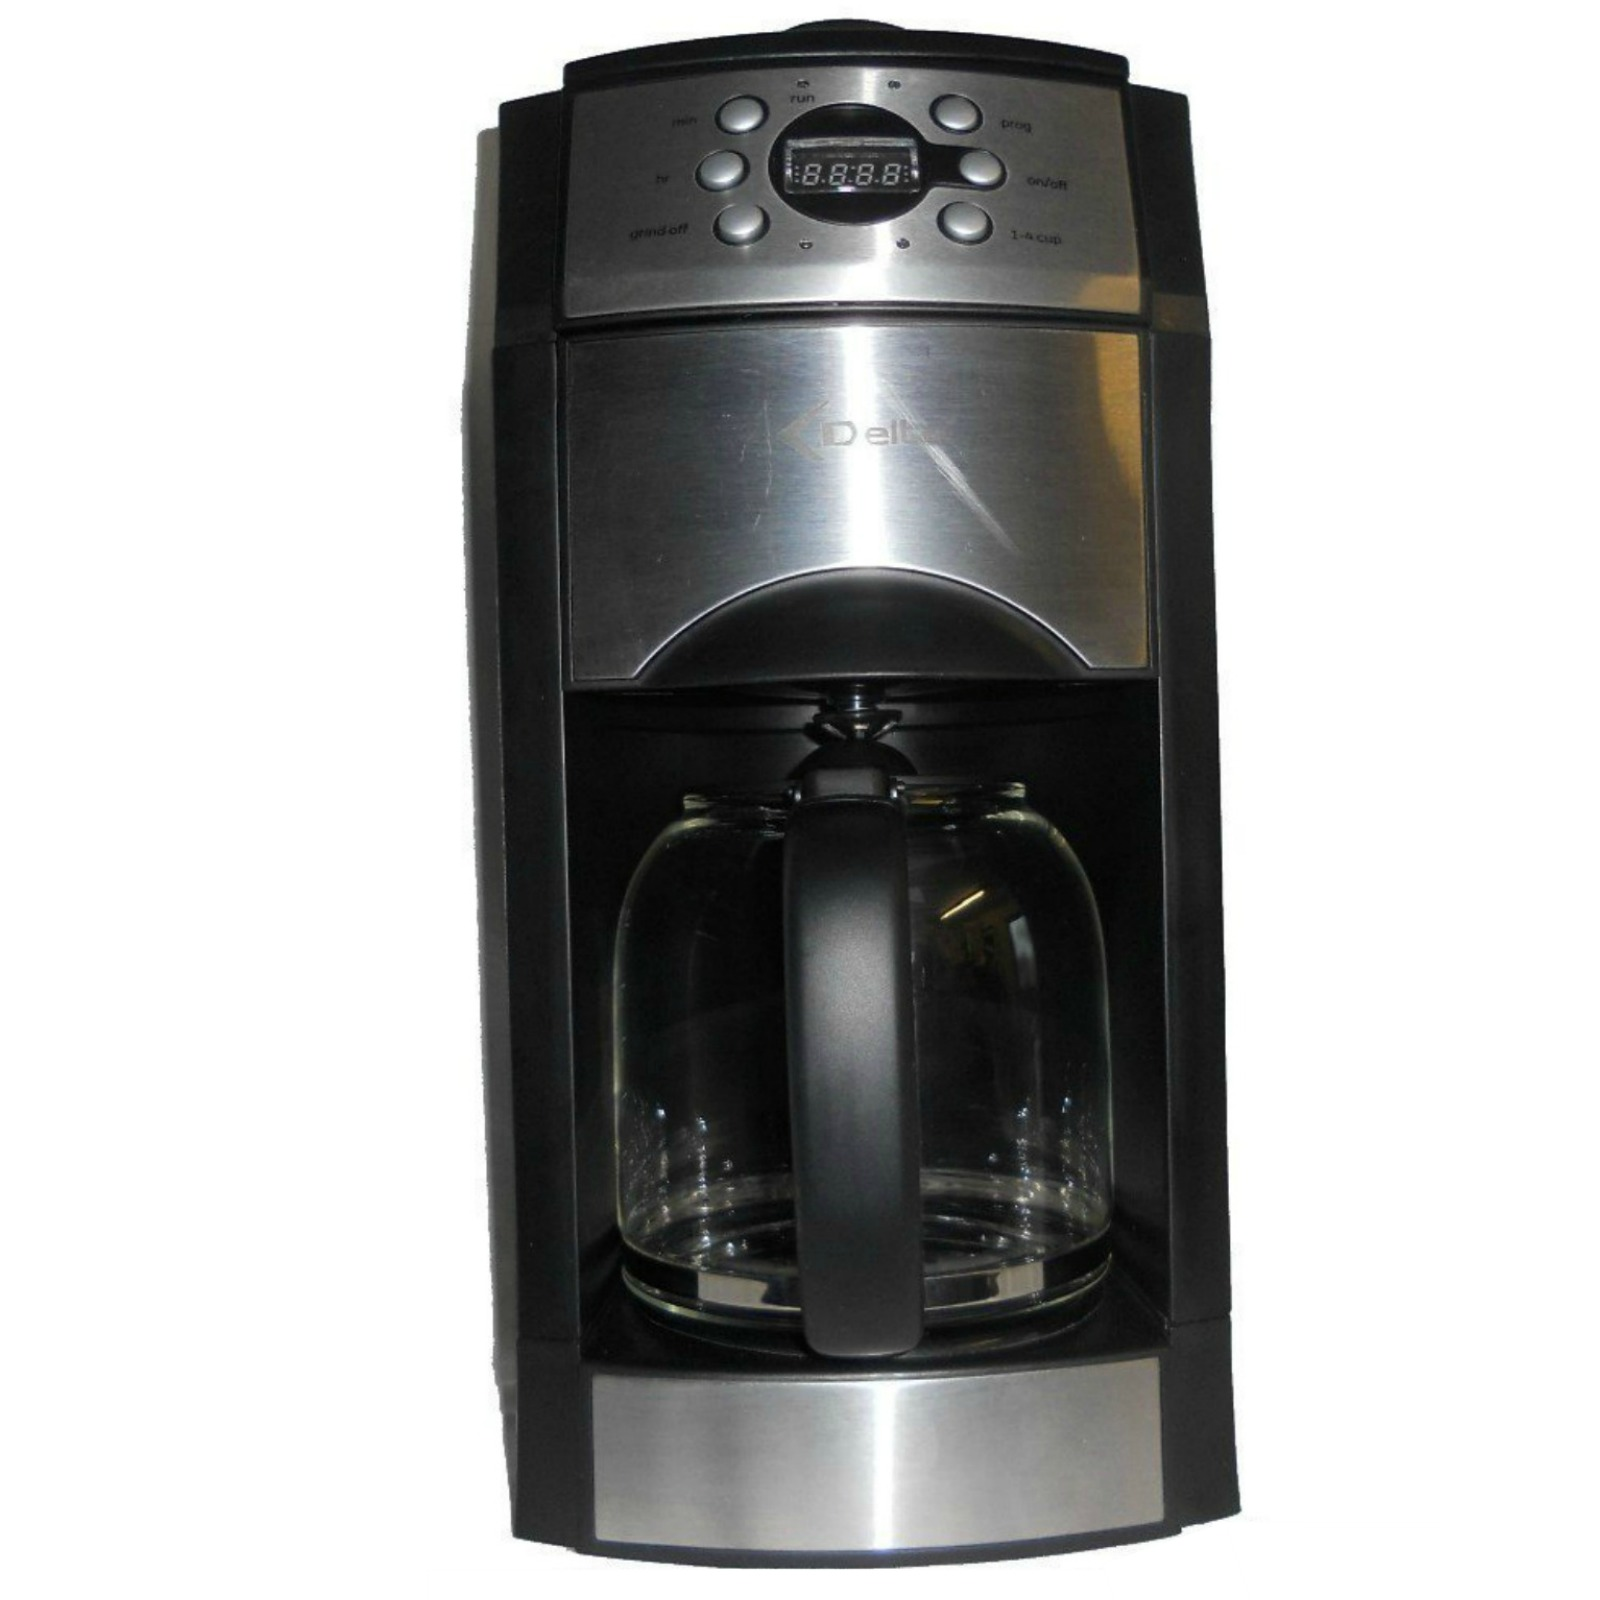 Delta High Living Coffee Maker With Grinder : Delta ADMC4117T Coffee Maker with Grinder Silver eBay